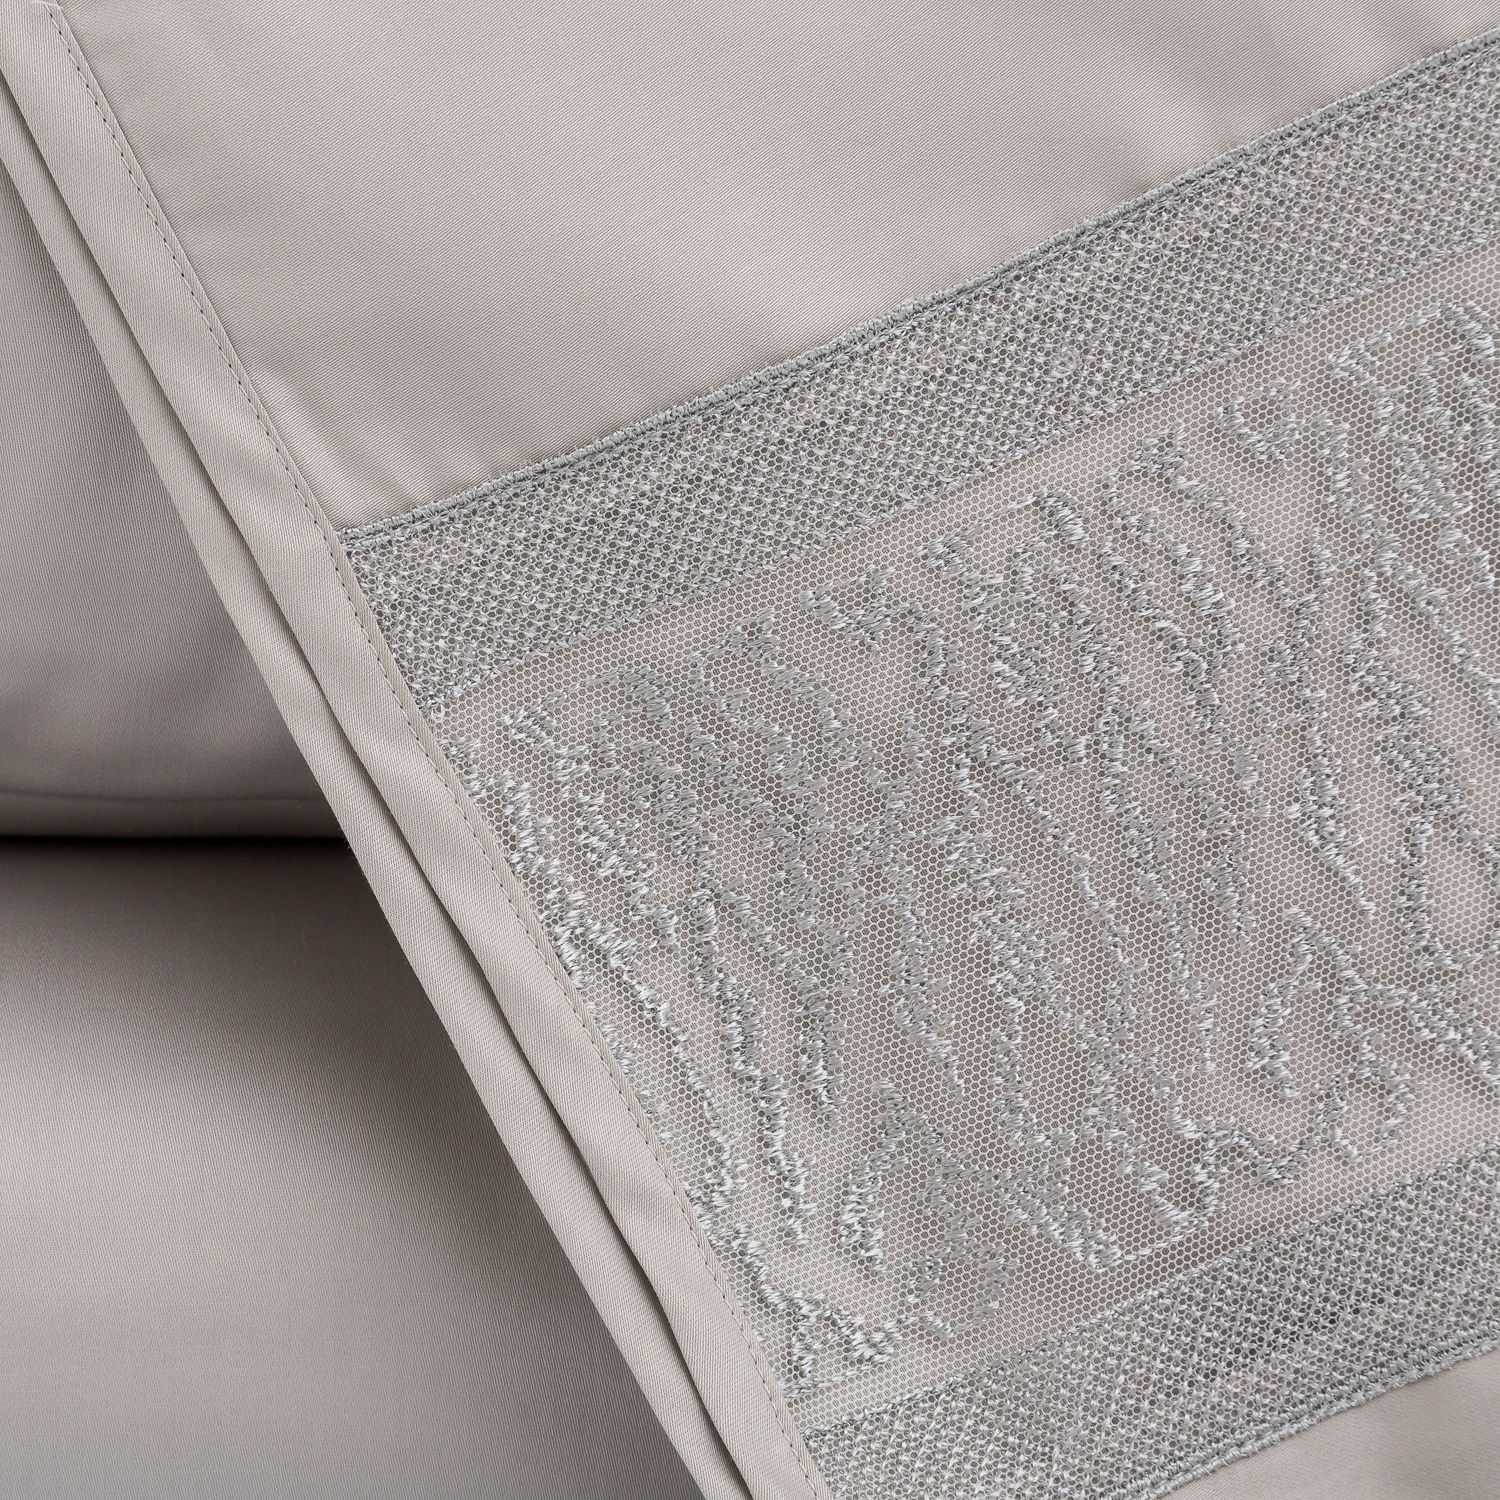 La Perla Home Collection-Compl. Lenzuola IPPOGRIFO-2 P.ze-GRIGIO ...